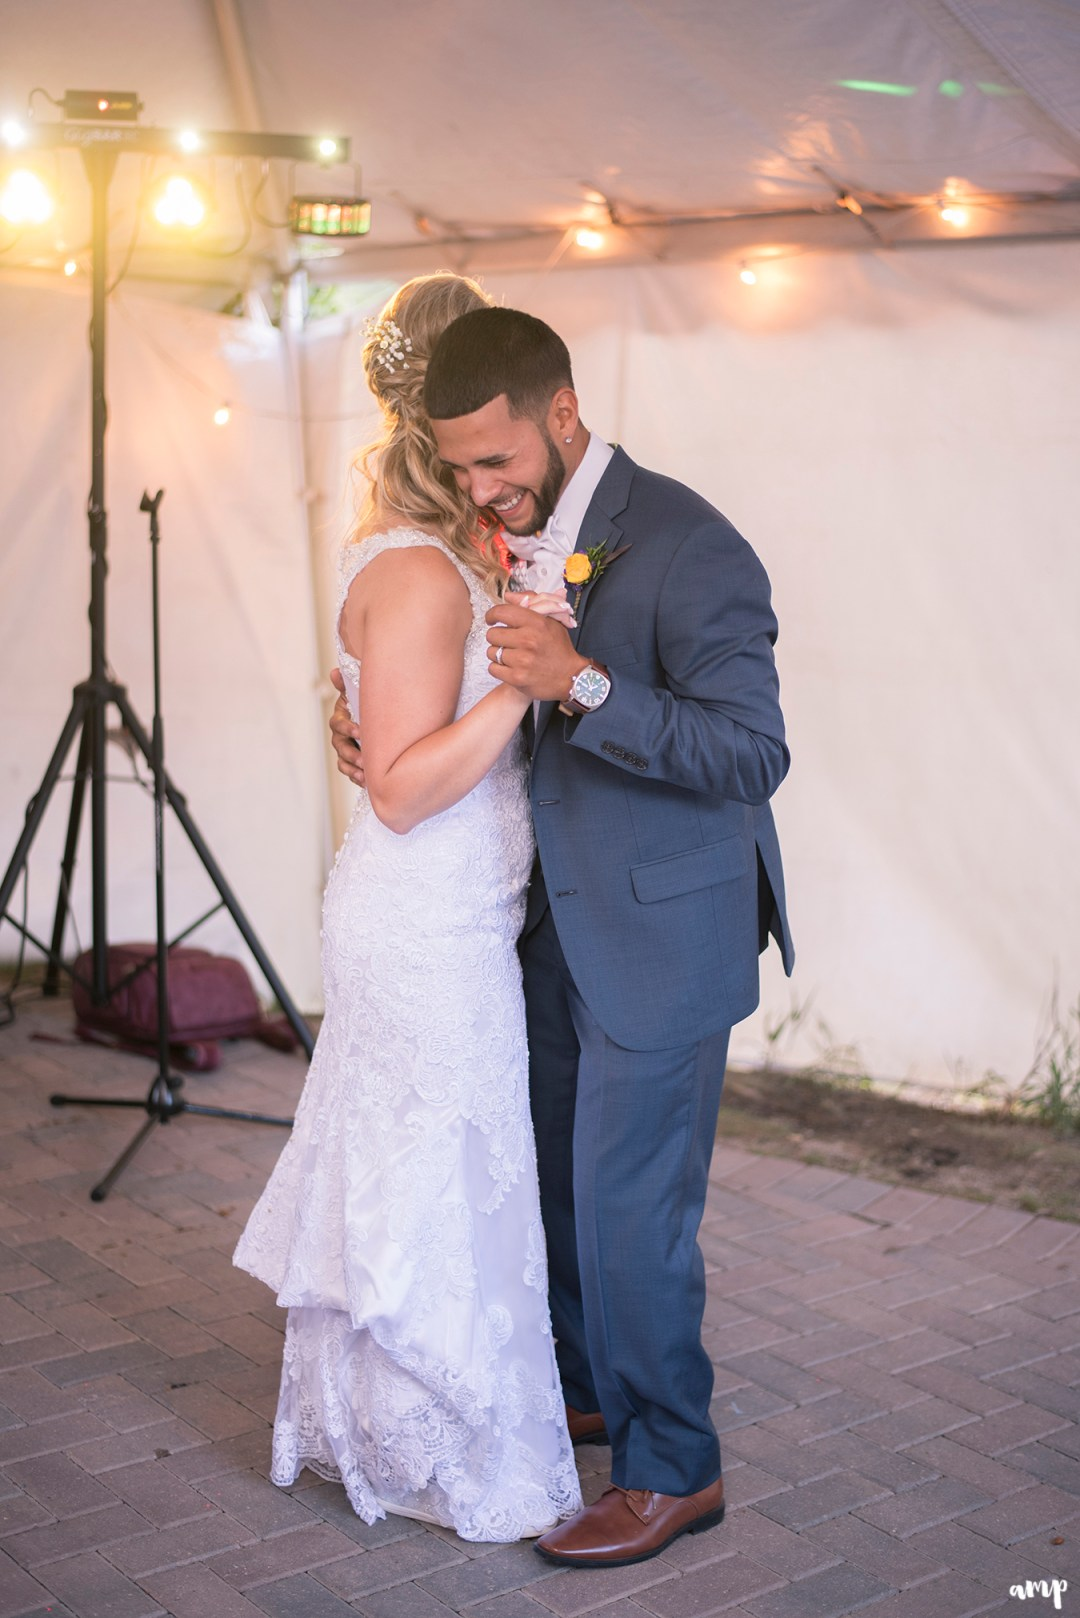 Bride & Groom's first dance at the Crested Butte Mountain Wedding Garden